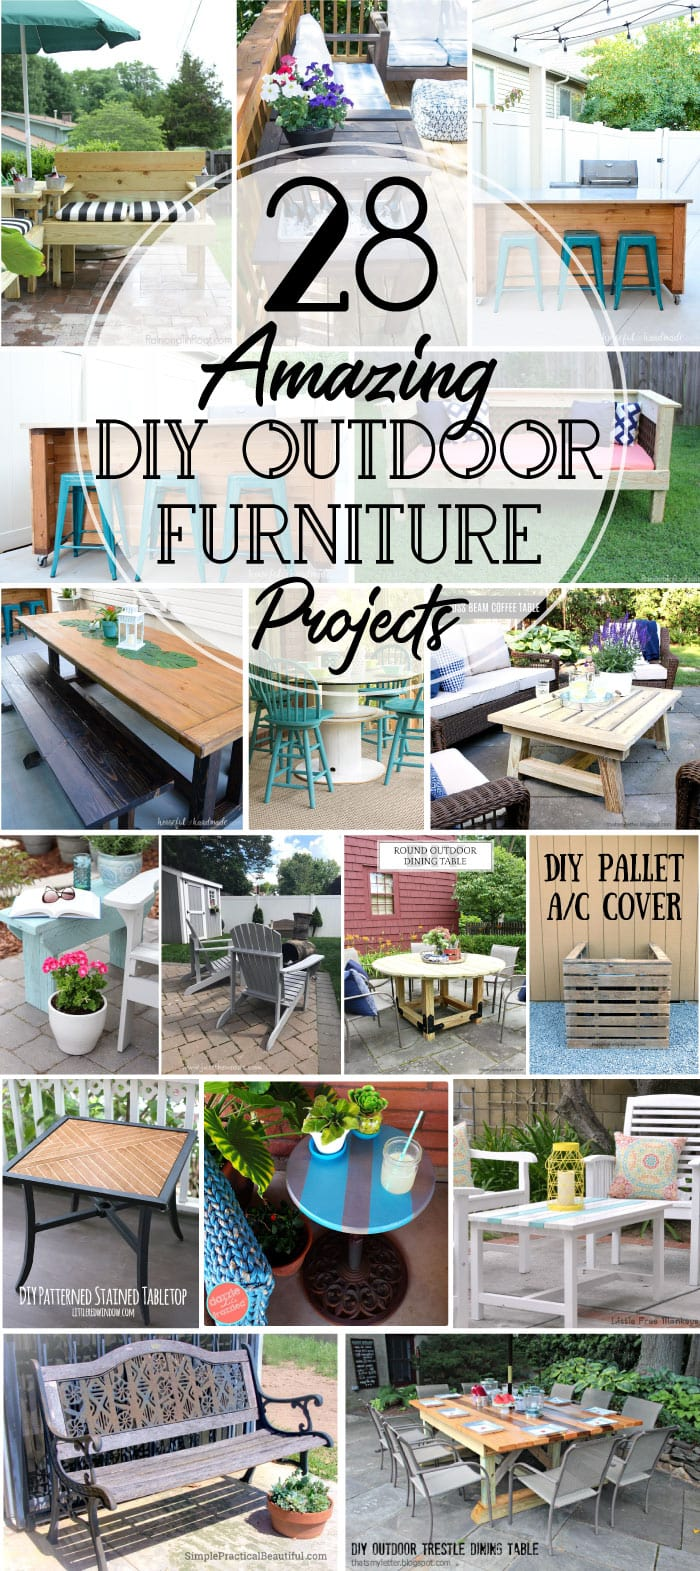 Get your yard ready for spring with these DIY outdoor furniture projects. Create the perfect backyard oasis with DIY patio furniture, DIY outdoor benches, patio table plans and so much more. These 28 DIY outdoor furniture projects will have you enjoying the sunshine soon. Housefulofhandmade.com